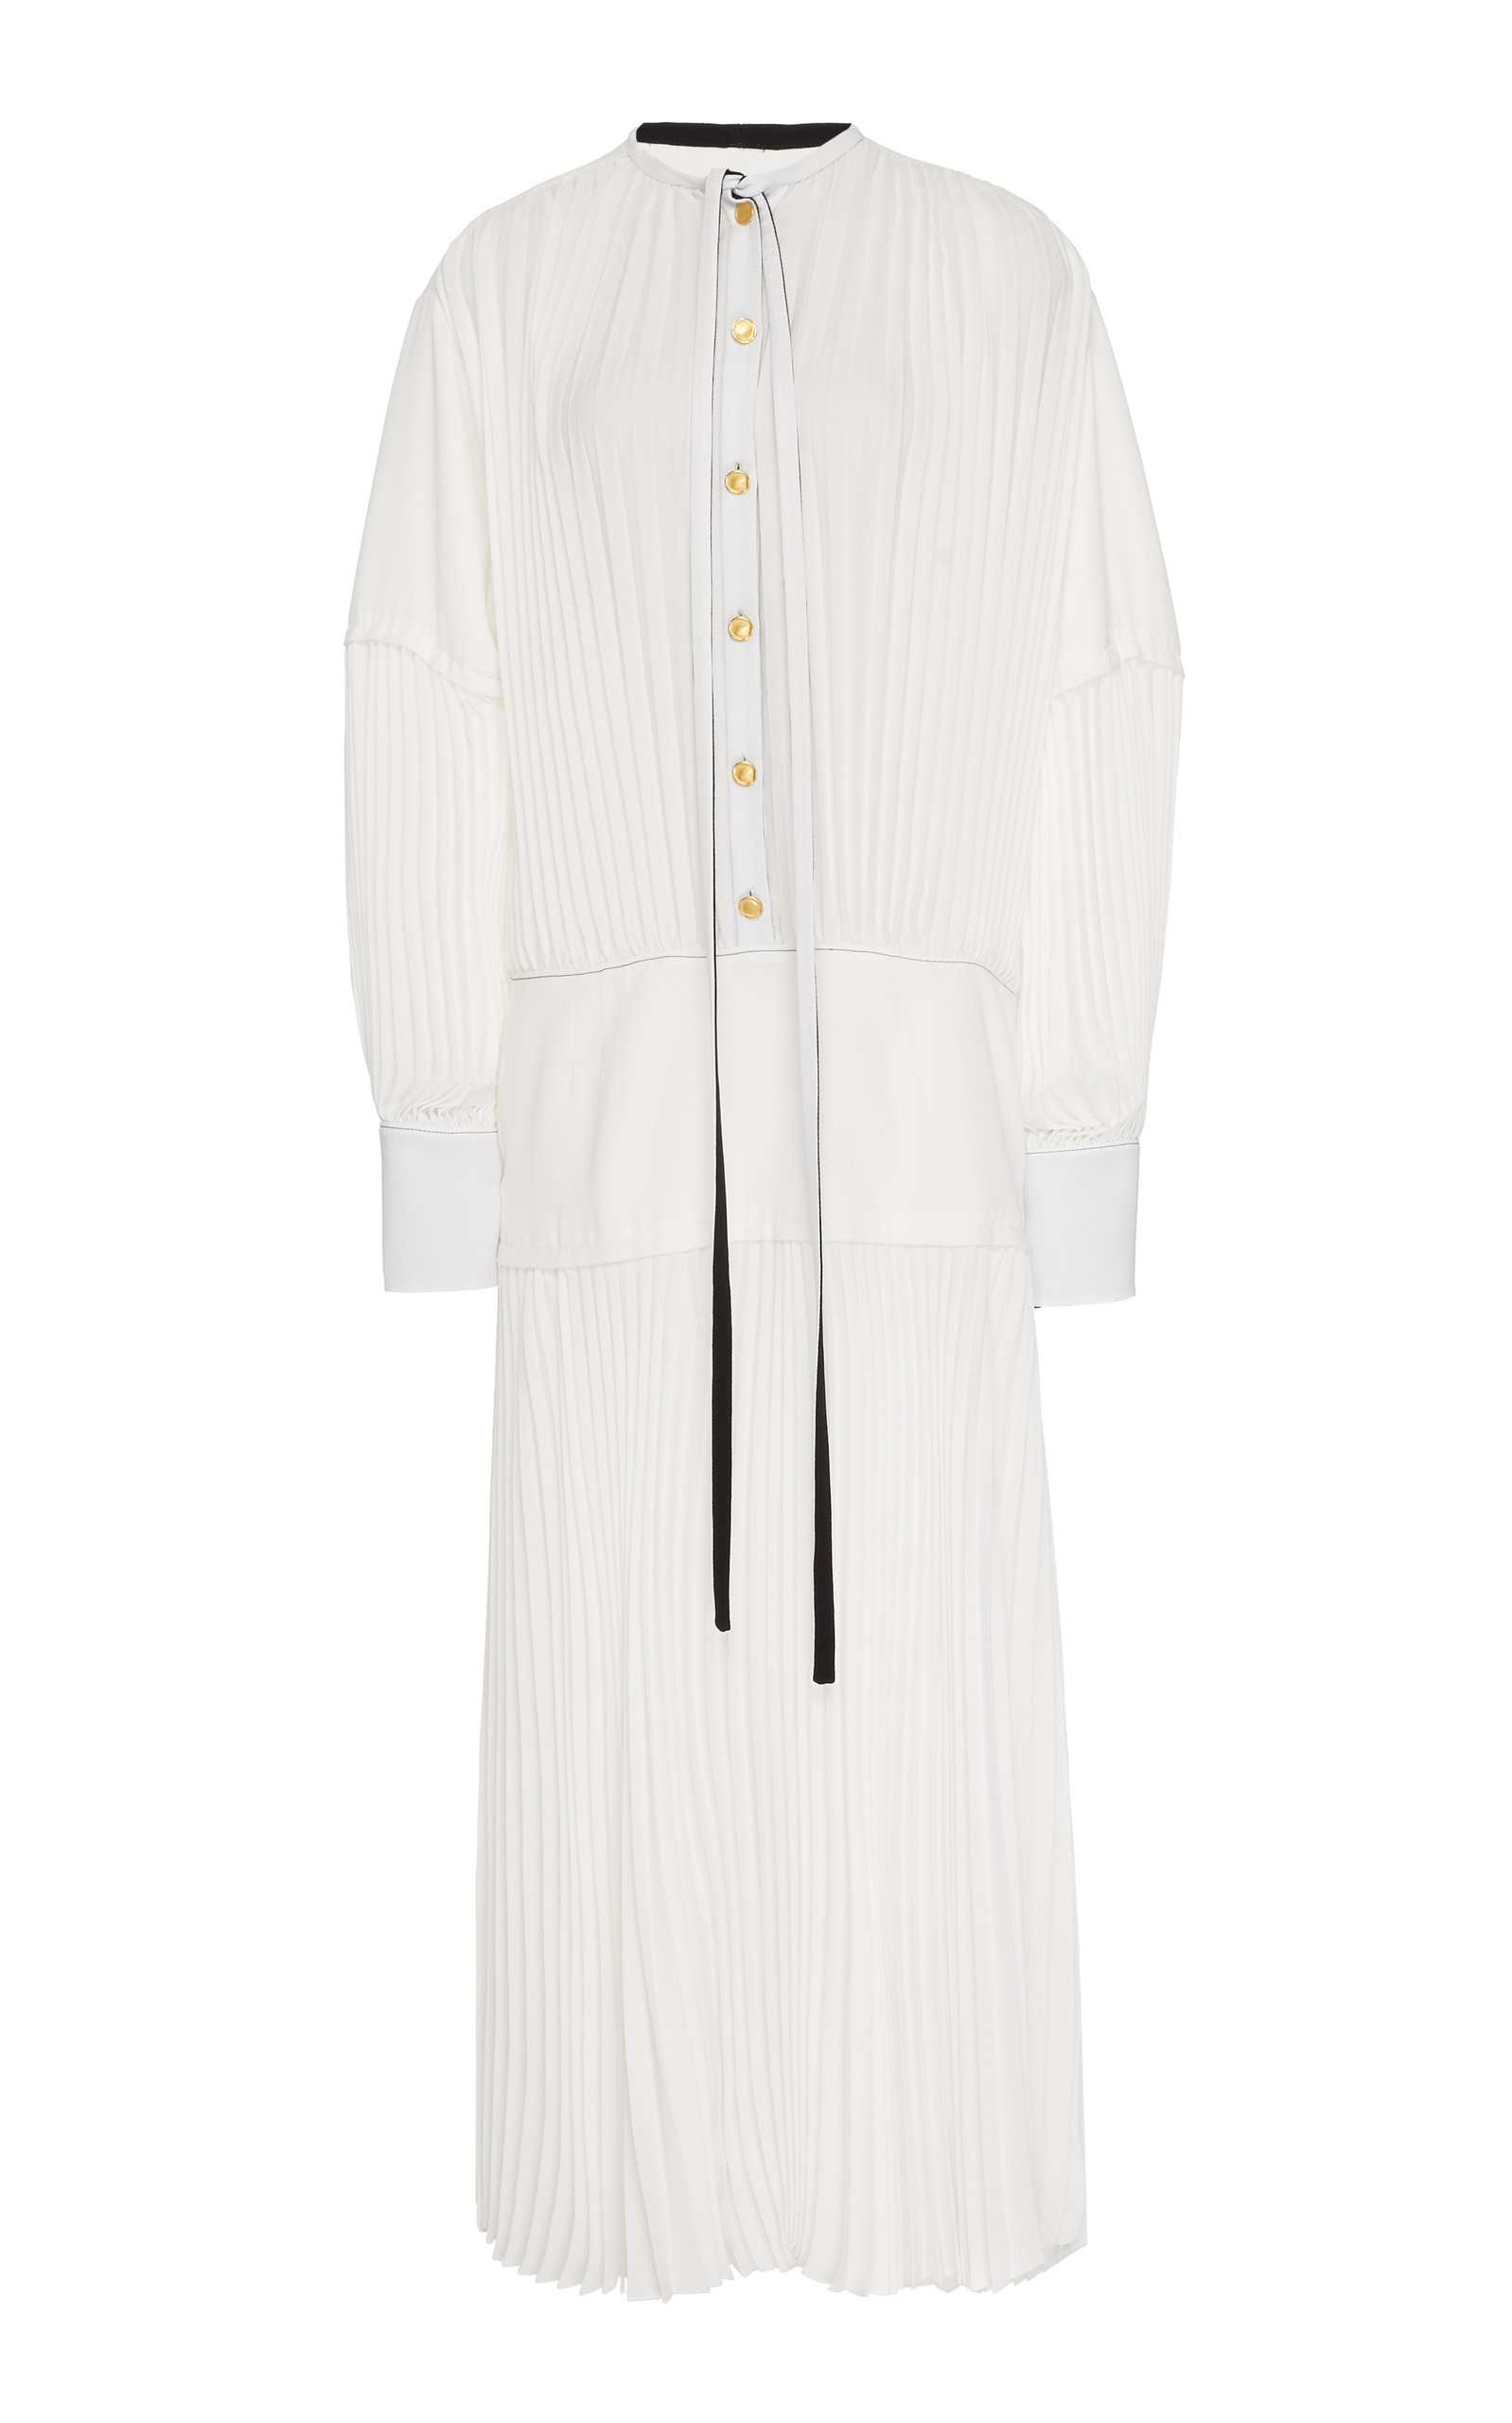 Buy Proenza Schouler Pleated Chiffon Midi Dress online, shop Proenza Schouler at the best price